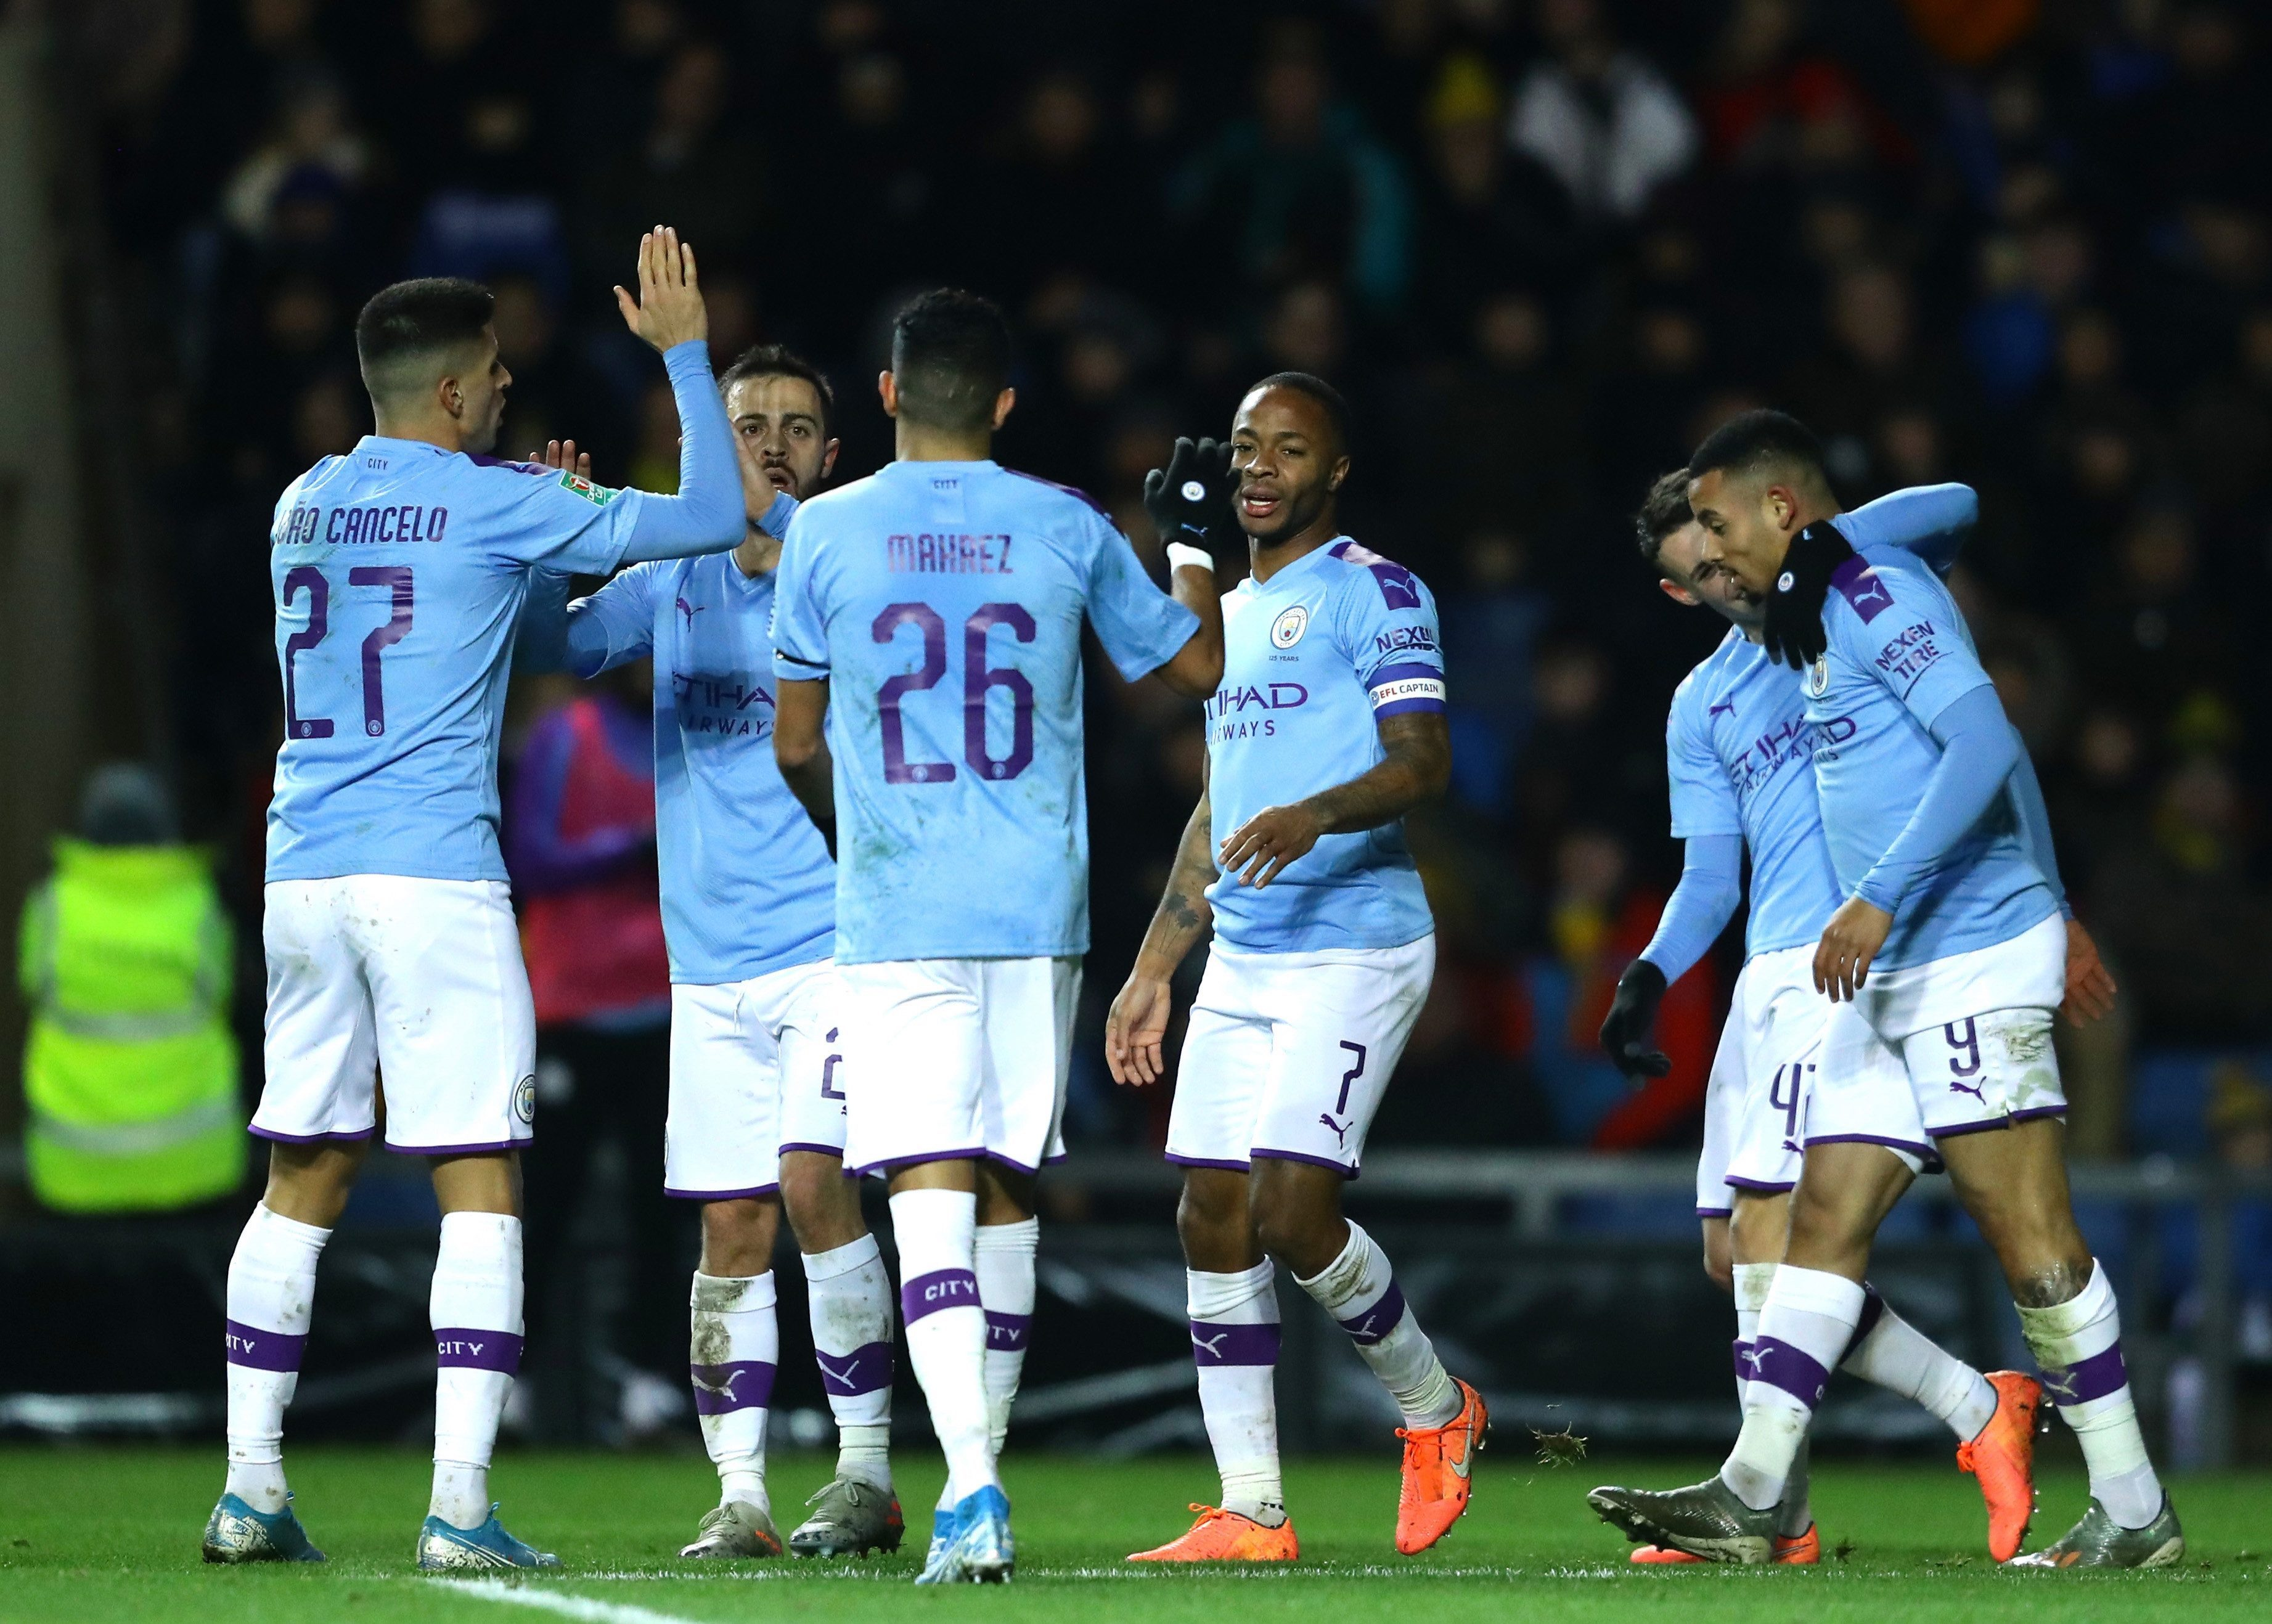 Carabao Cup RESULTS: Manchester City see off Oxford, Man United batter Colchester and Leicester edge past Everton on penalties